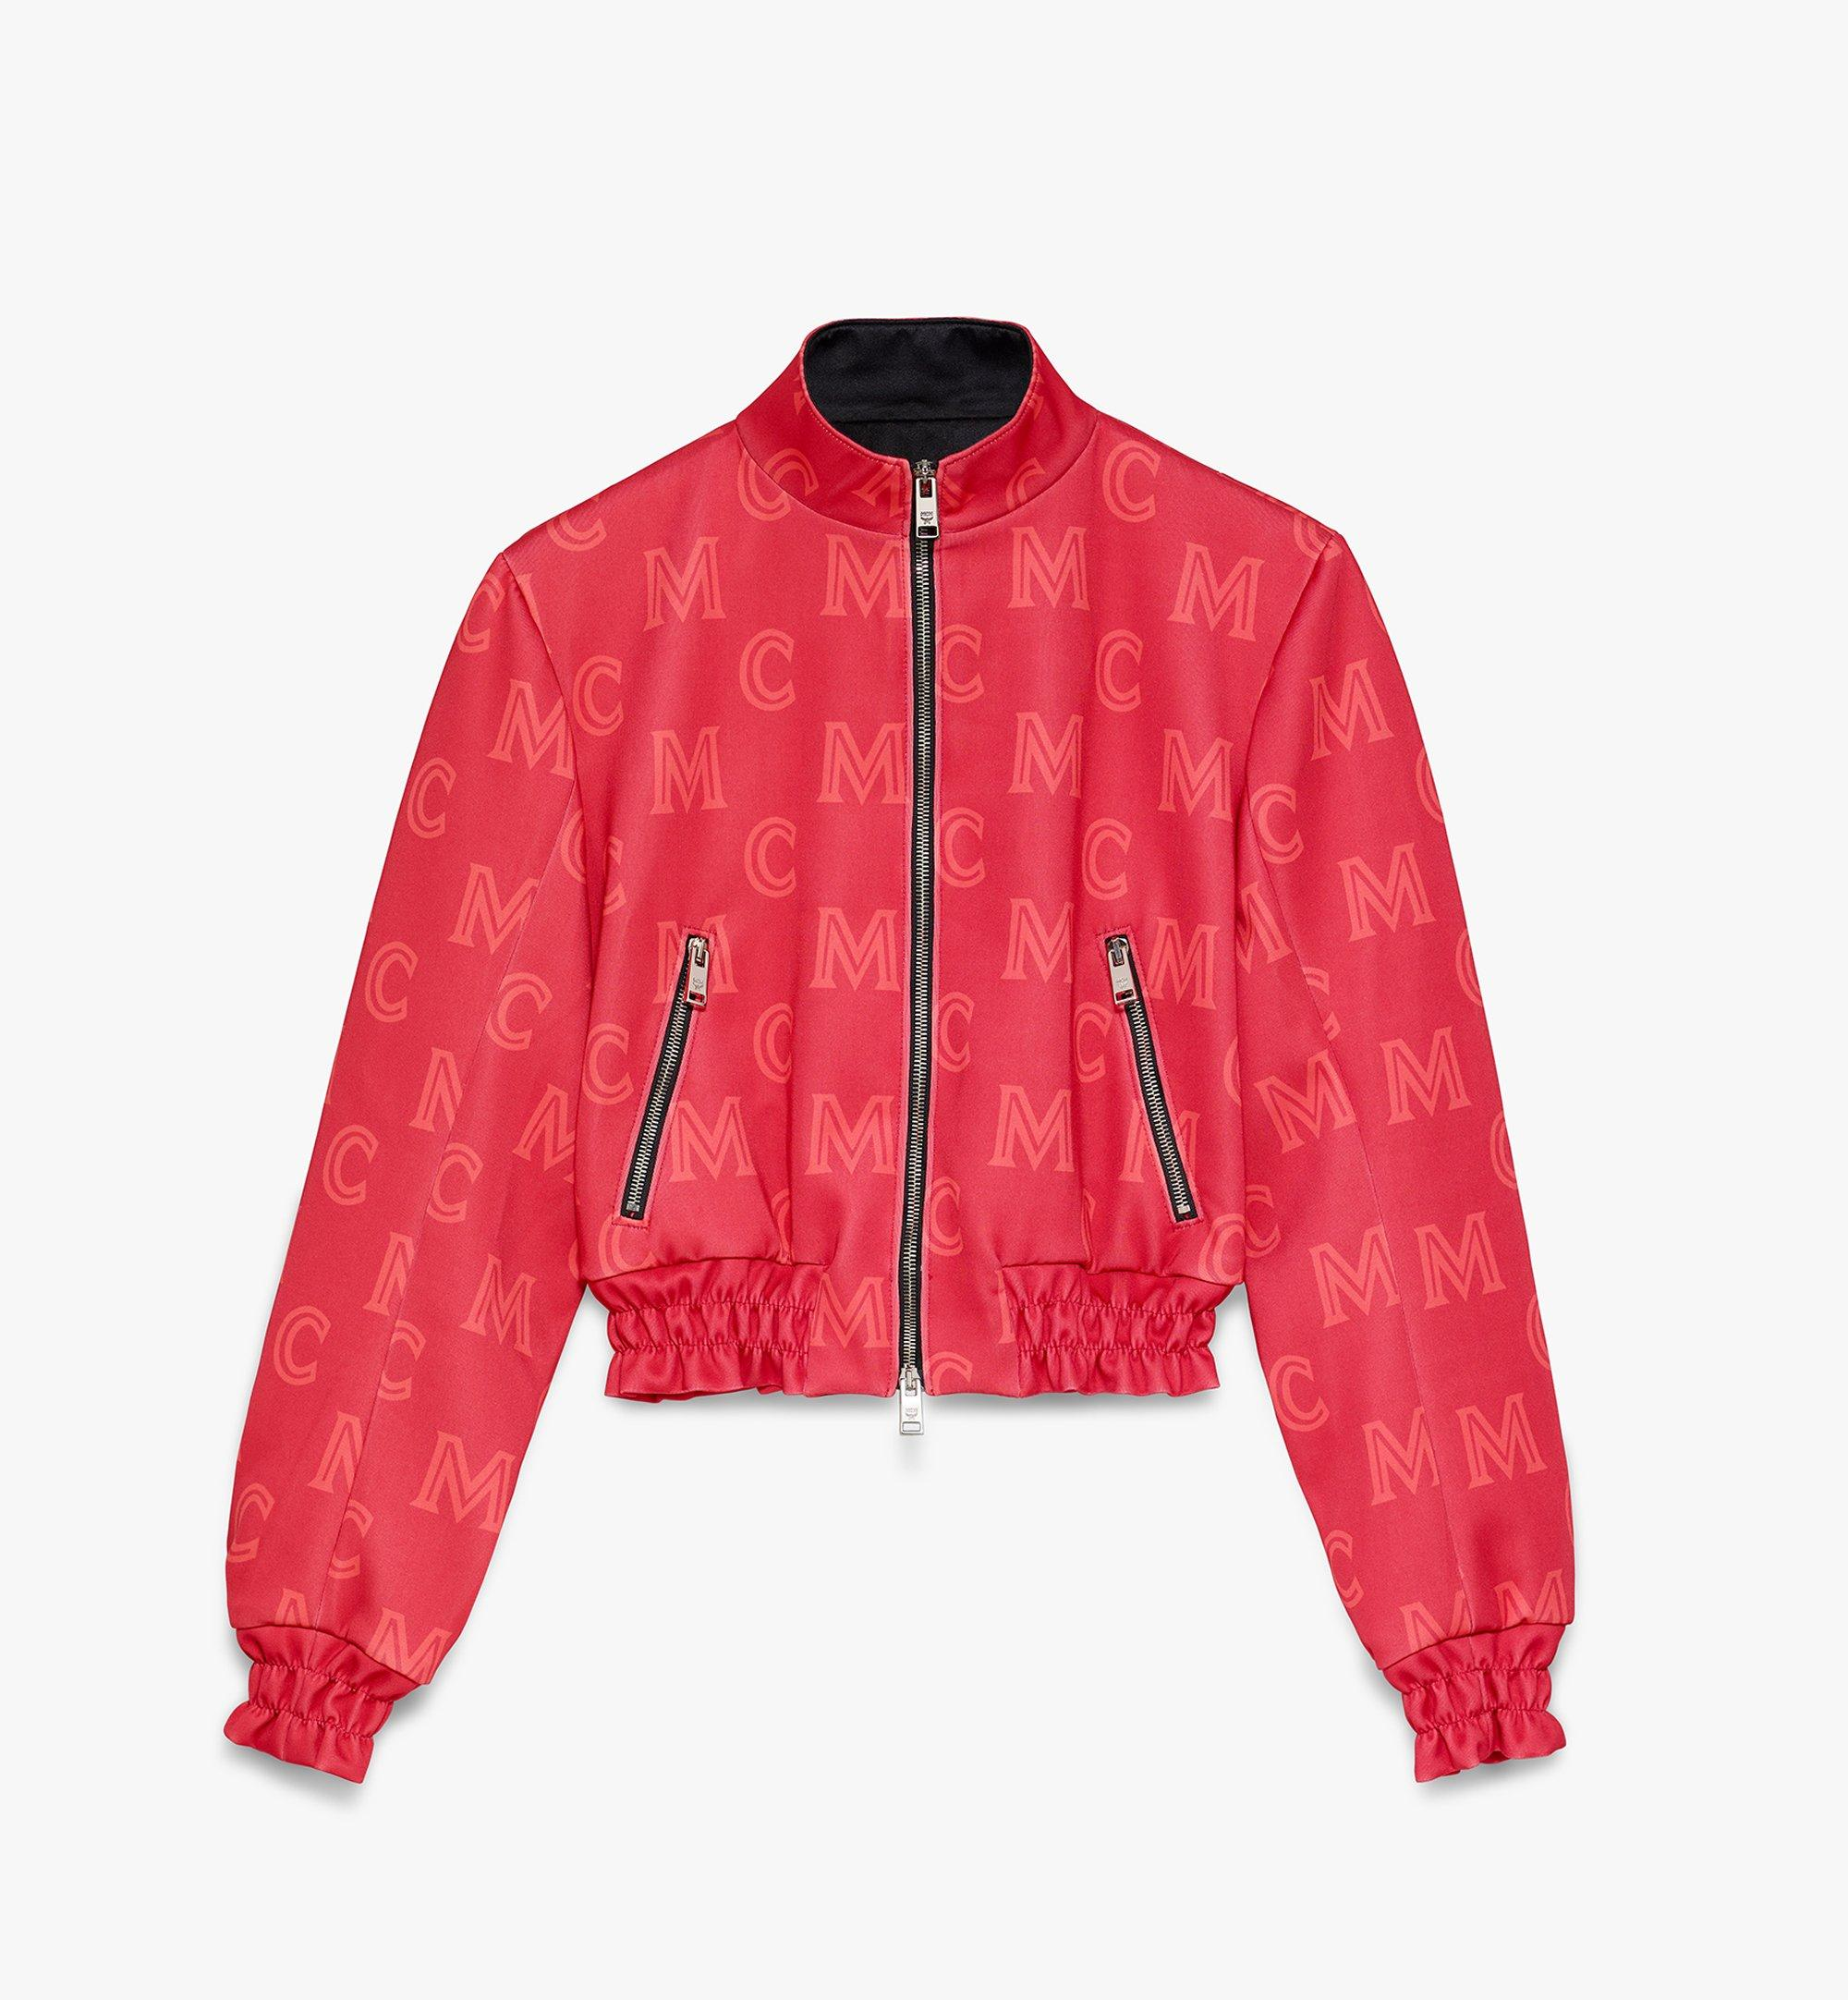 MCM Women's Monogram Track Jacket Red MFJASMM02R400M Alternate View 1